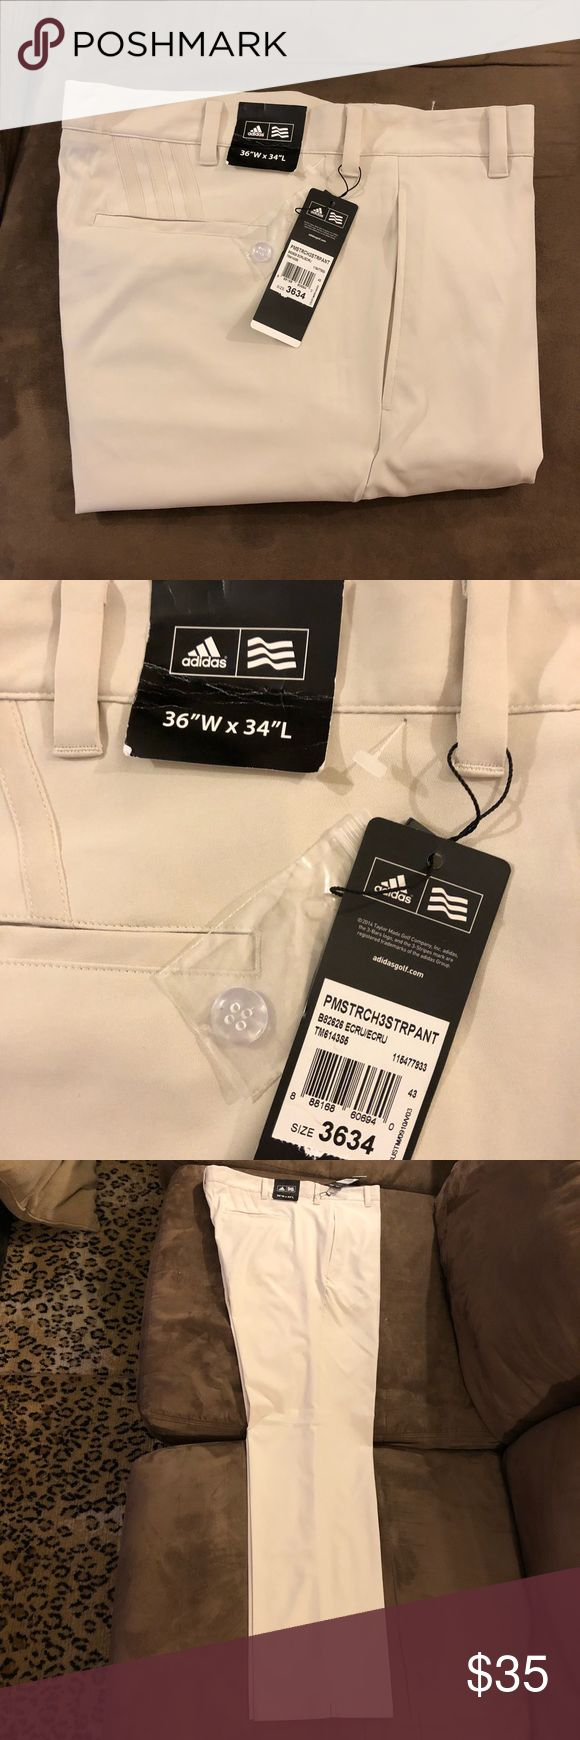 Adidas NWT Ecru Light Tan Golf Pants 36x34 Adidas Solid Light Tan Ecru Golf Pants size 36x34, Flat Front and plain bottom! NEW WITH TAGS!! Please make reasonable offers and bundle! Ask questions! adidas Pants Chinos & Khakis